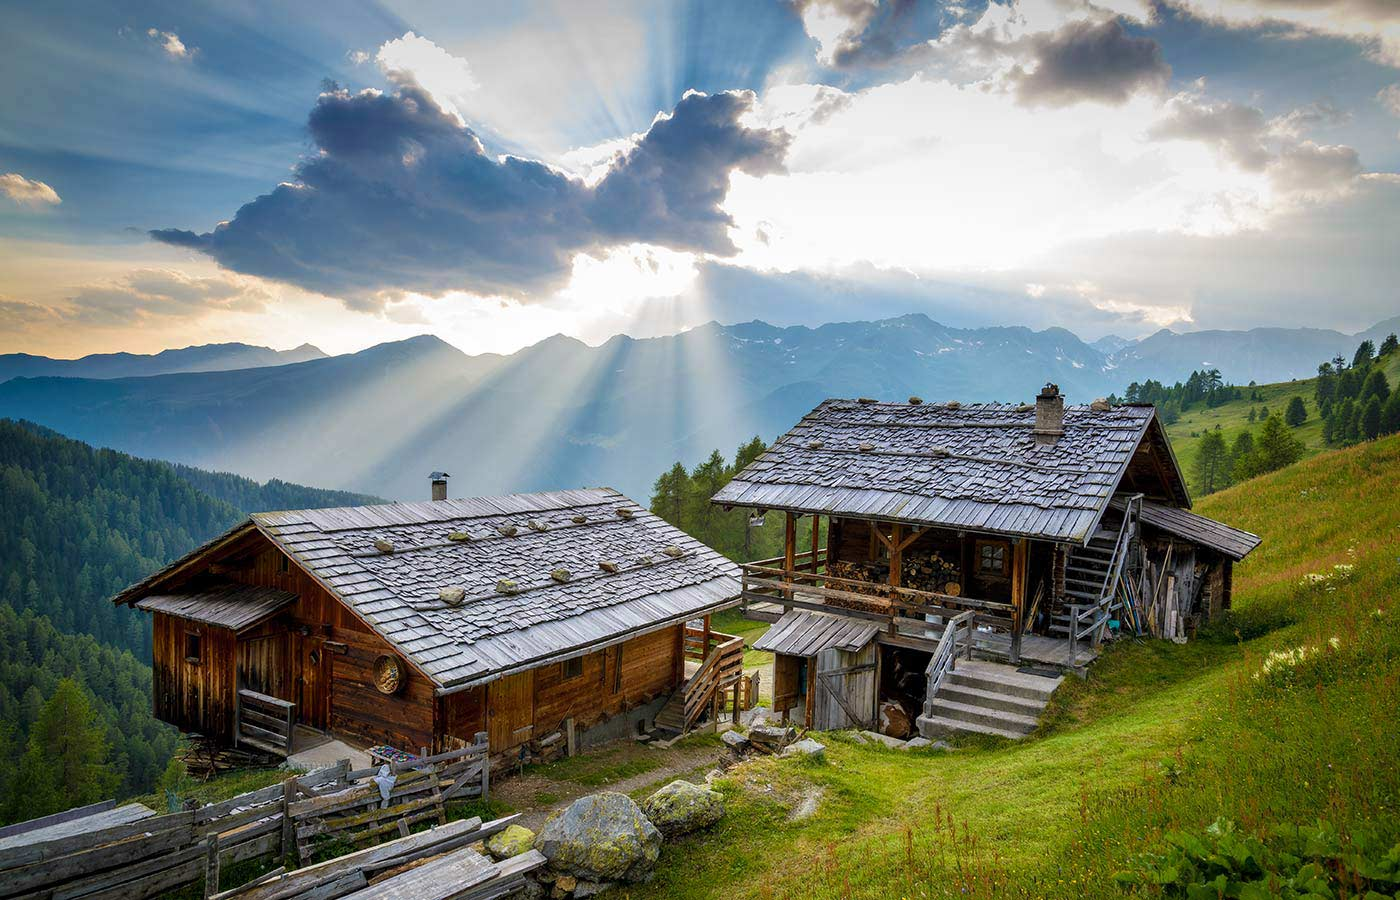 Two old wooden alpine huts illuminated by the light of the sun hidden by the clouds